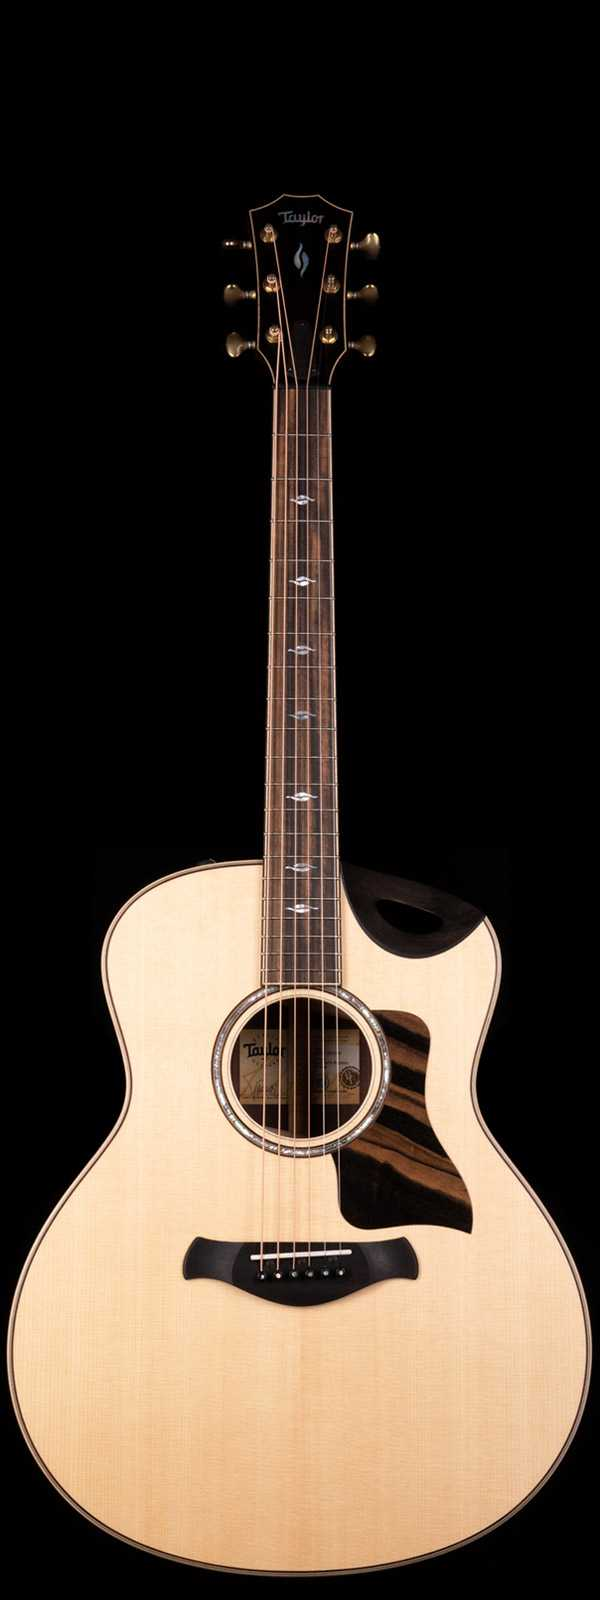 Taylor Builder's Edition 816ce with Soundport Cutaway